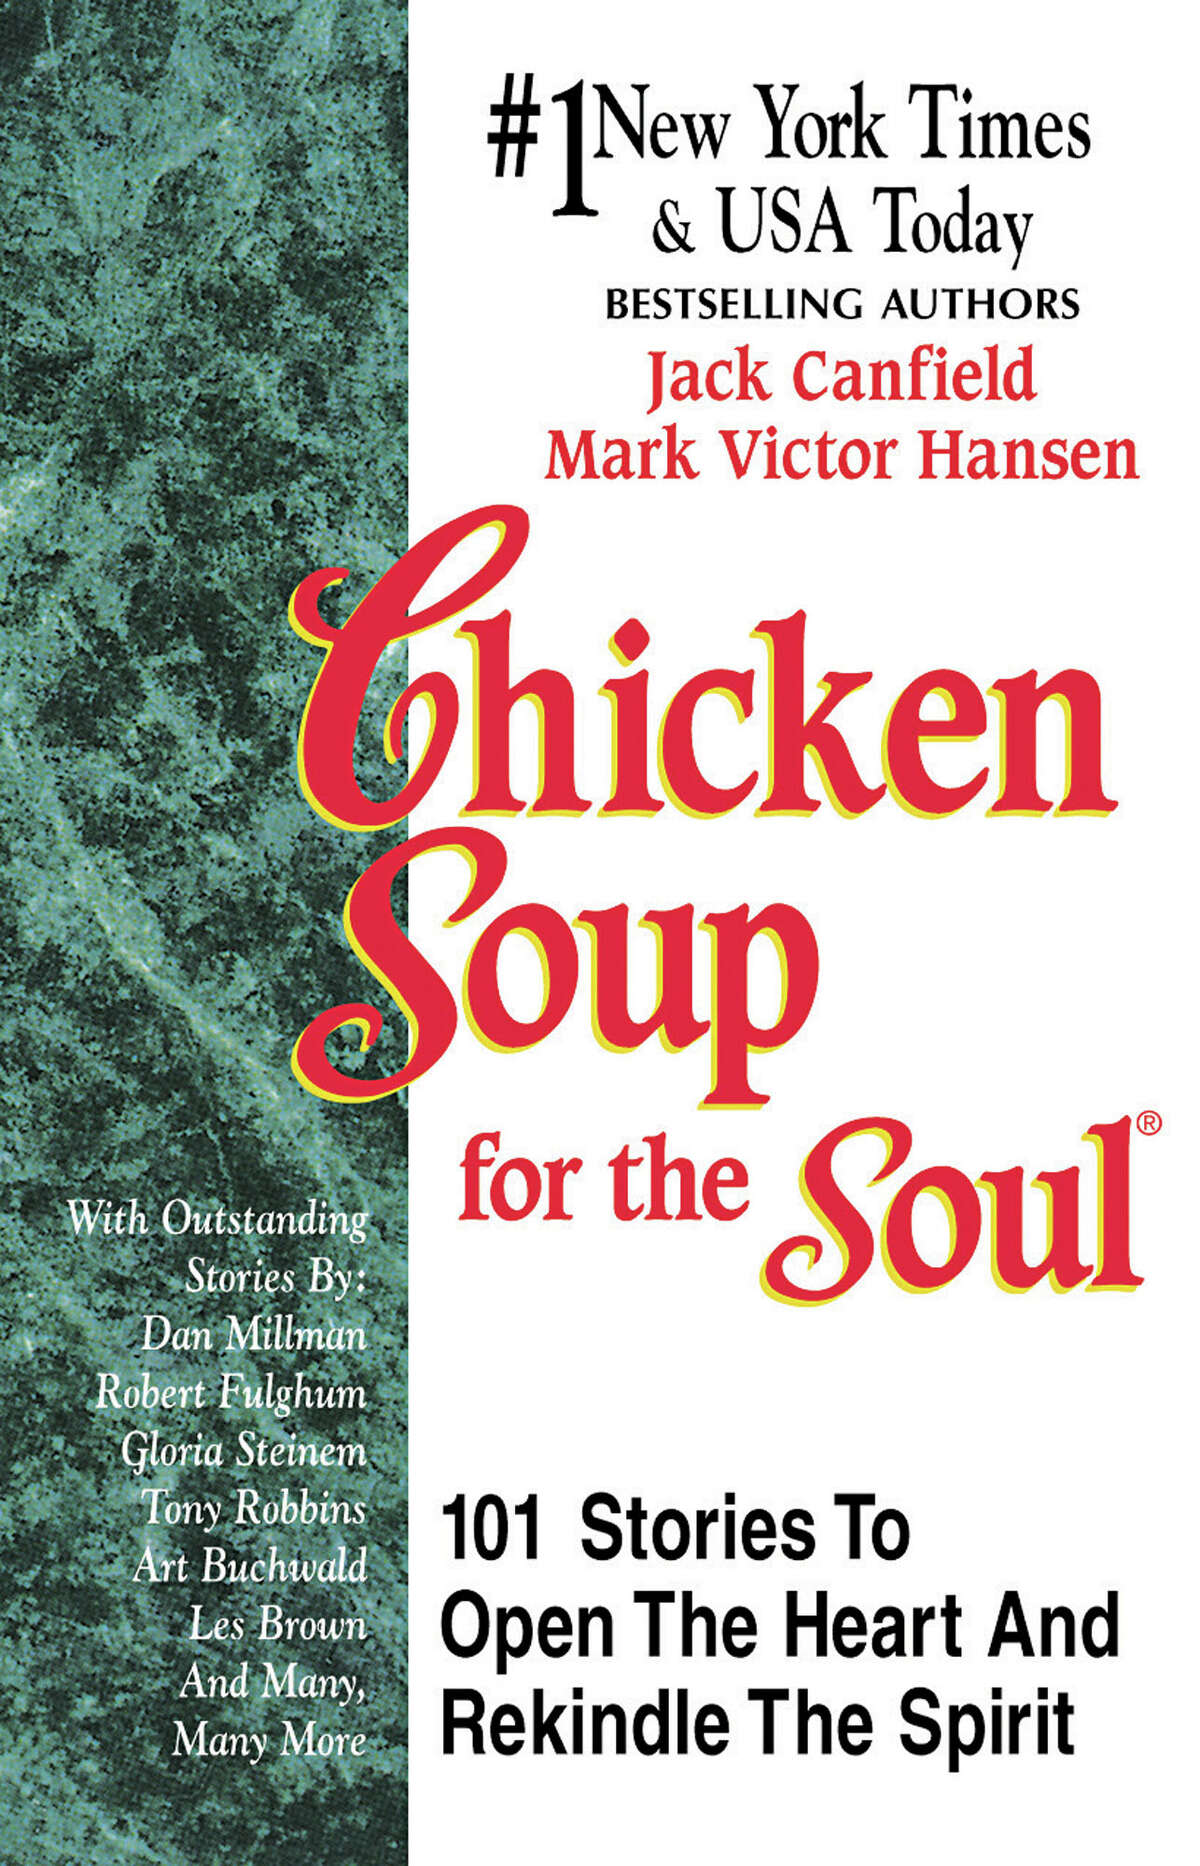 Any Chicken Soup for the Soul book (all ages) There are dozens of titles including pre-teen and teen of these inspirational books. These feel-good, true stories warm the heart.